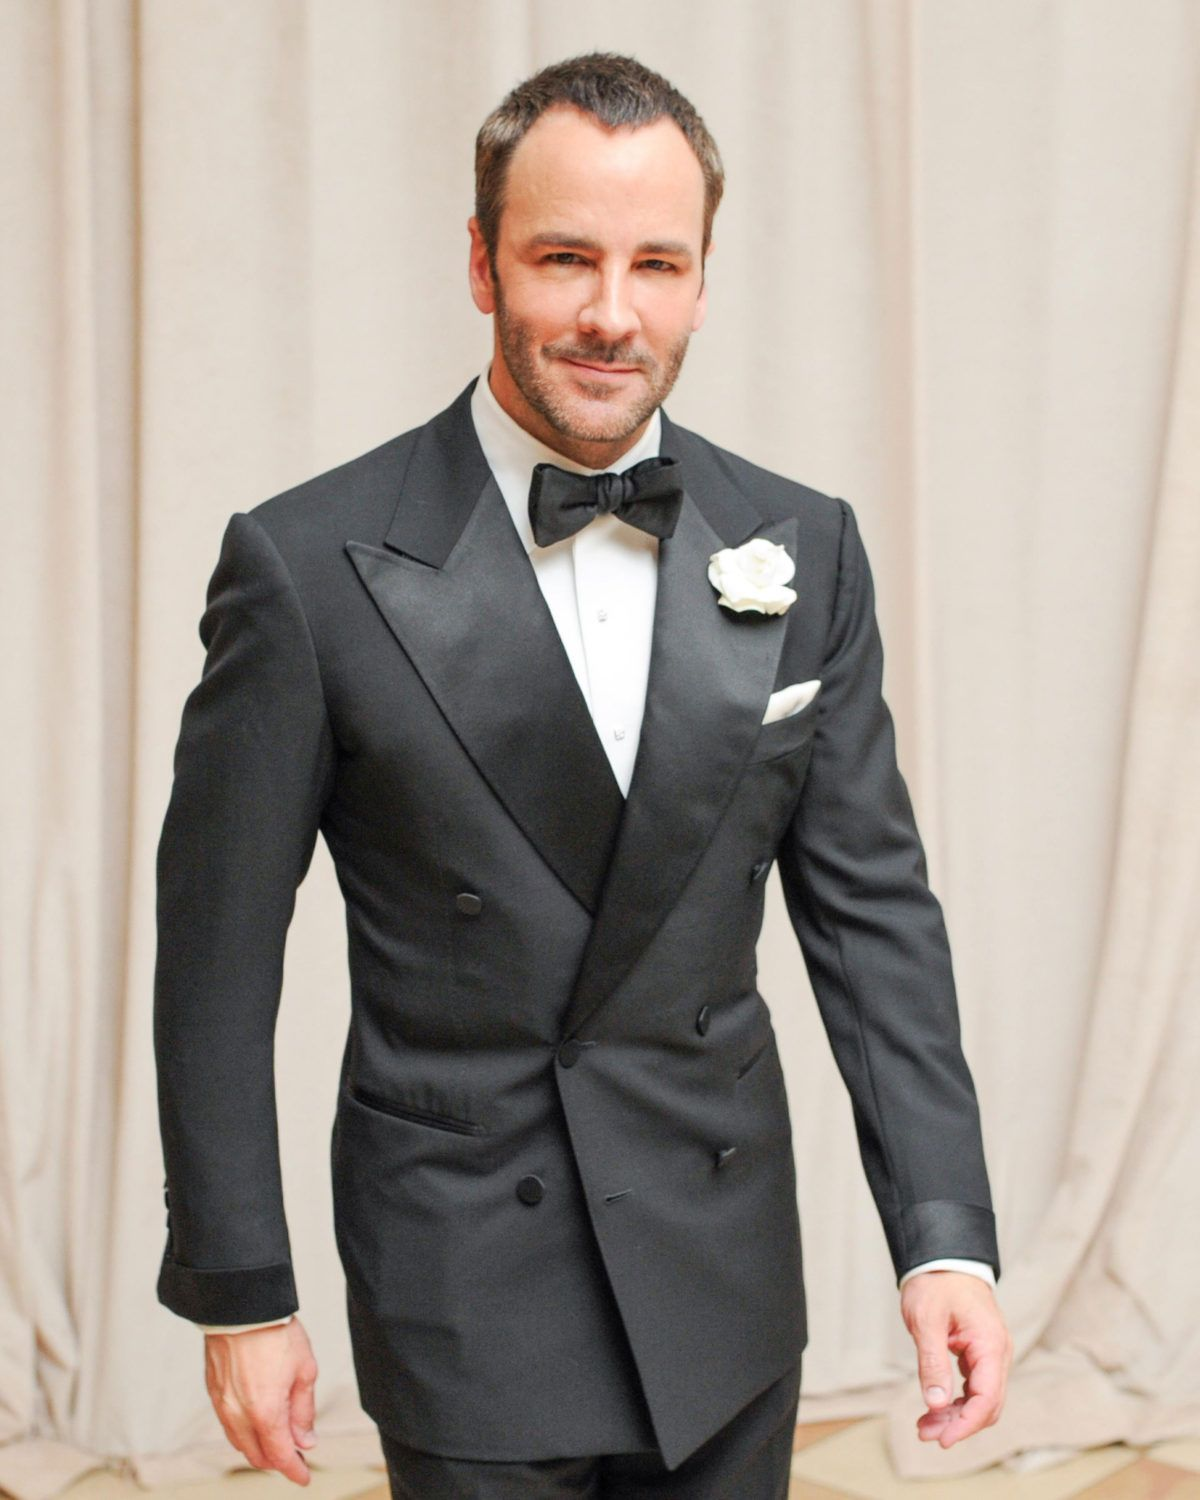 1e969fbadbd34a Tom Ford in a nicely cut 6x4 Tuxedo with wide peaked lapels, cloth covered  buttons, satin turnback cuffs and jetted pockets